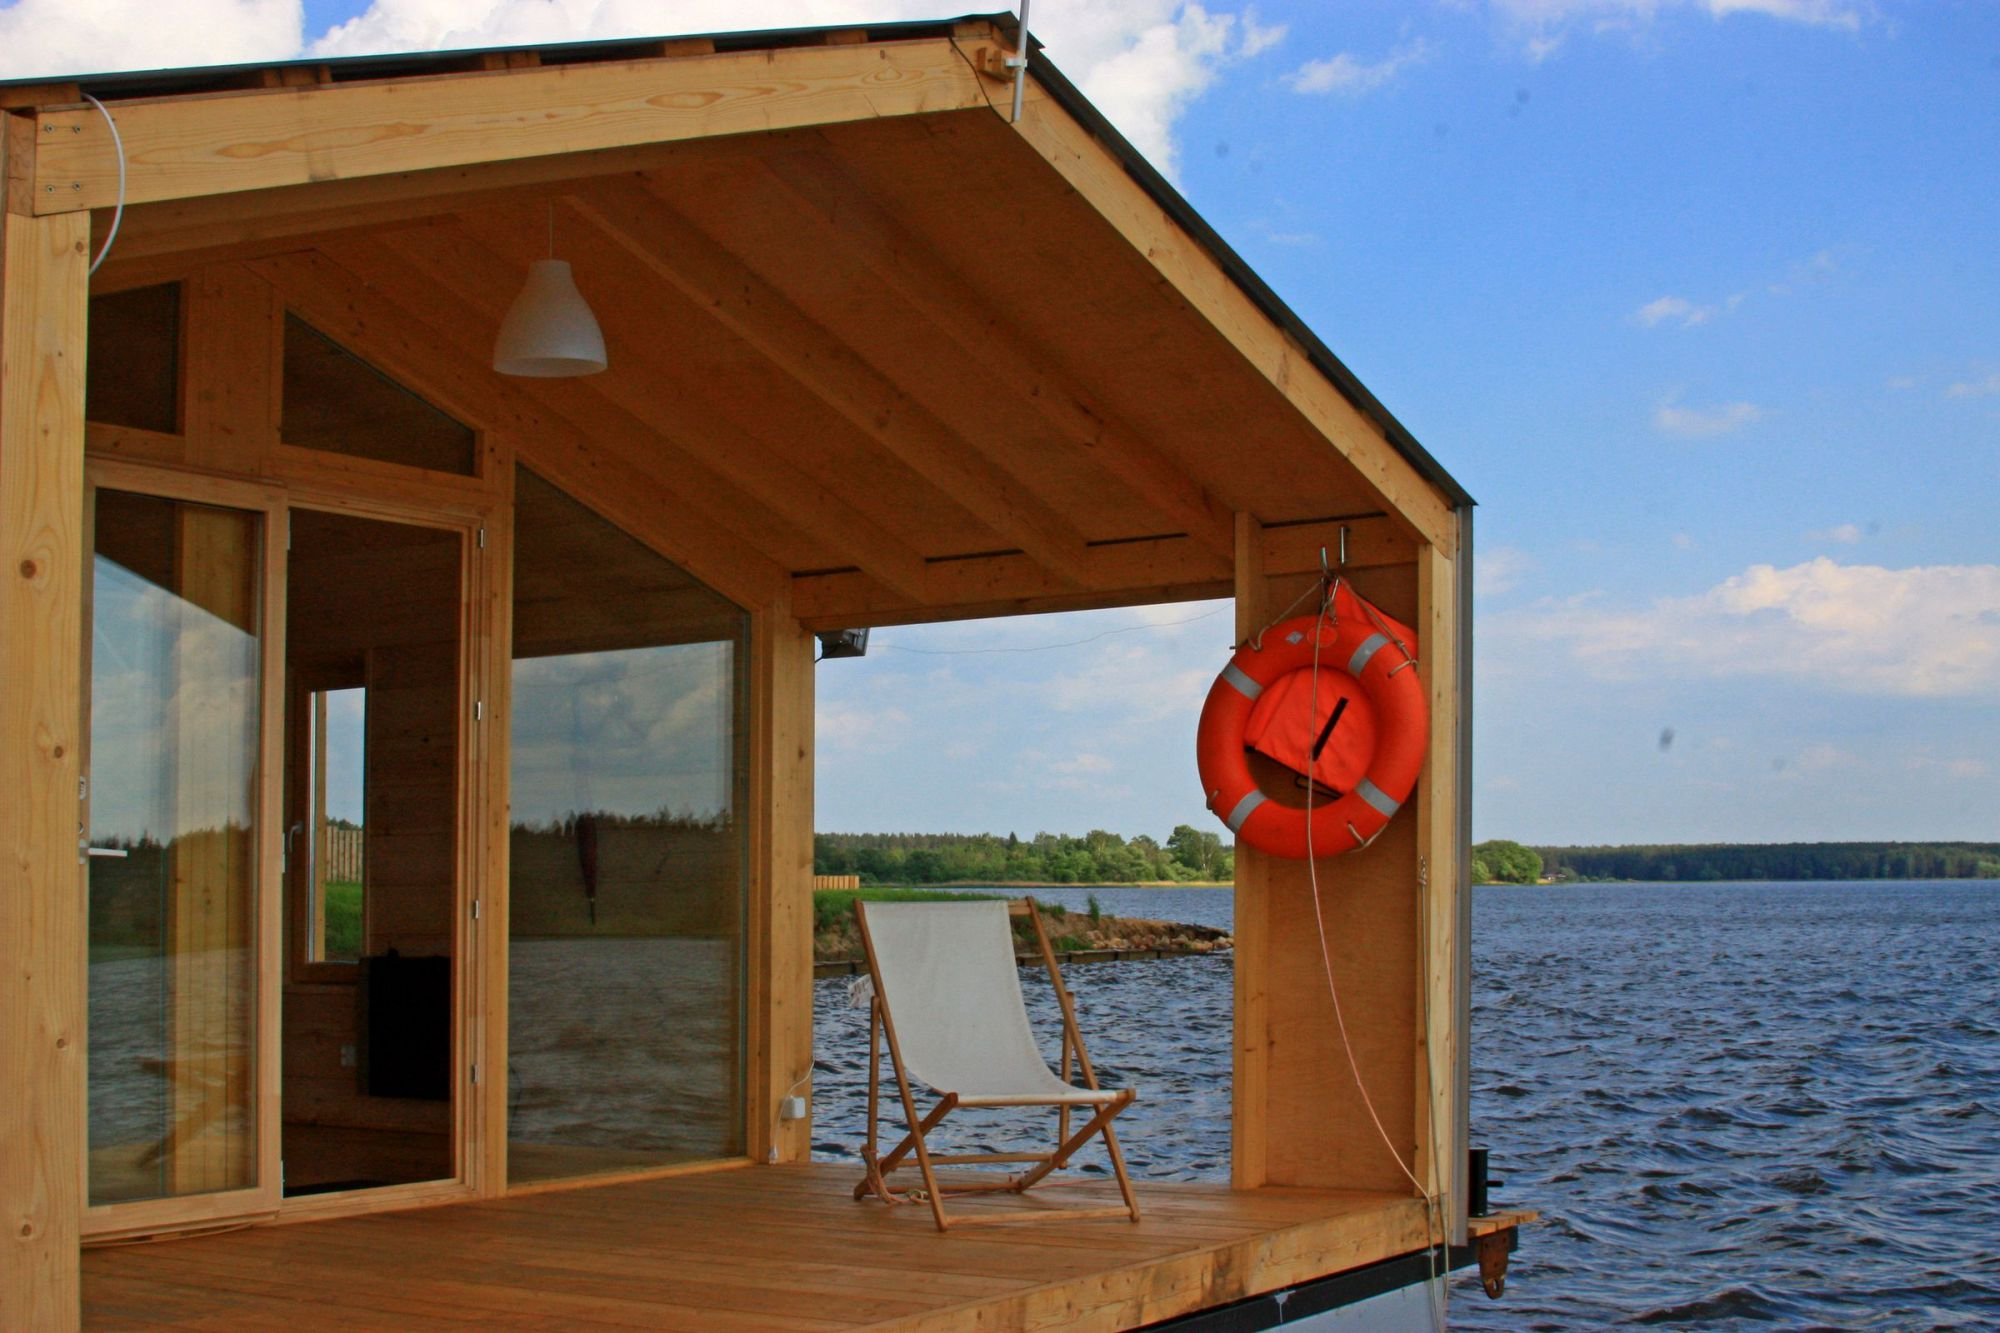 Dubldom Houseboat A Modular Floating Cabin With A 280 Sq Ft Studio Floor  Plan   Small